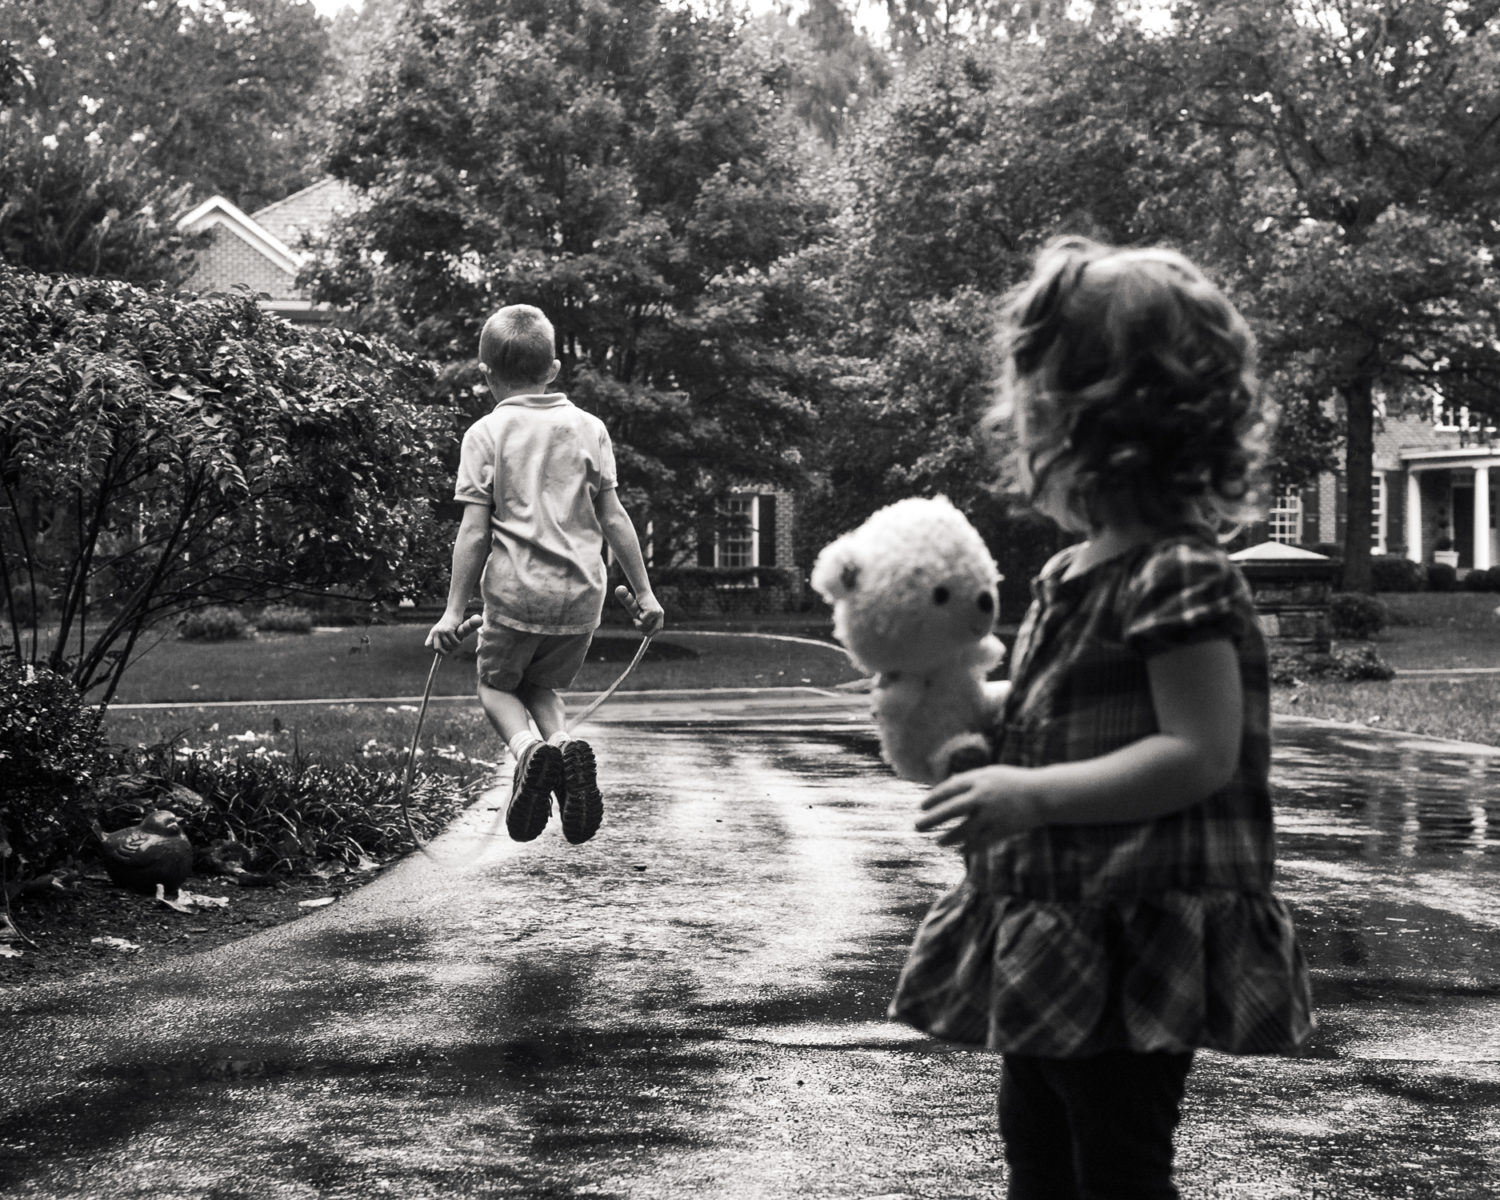 Boy jumping rope in the rain while sister watches